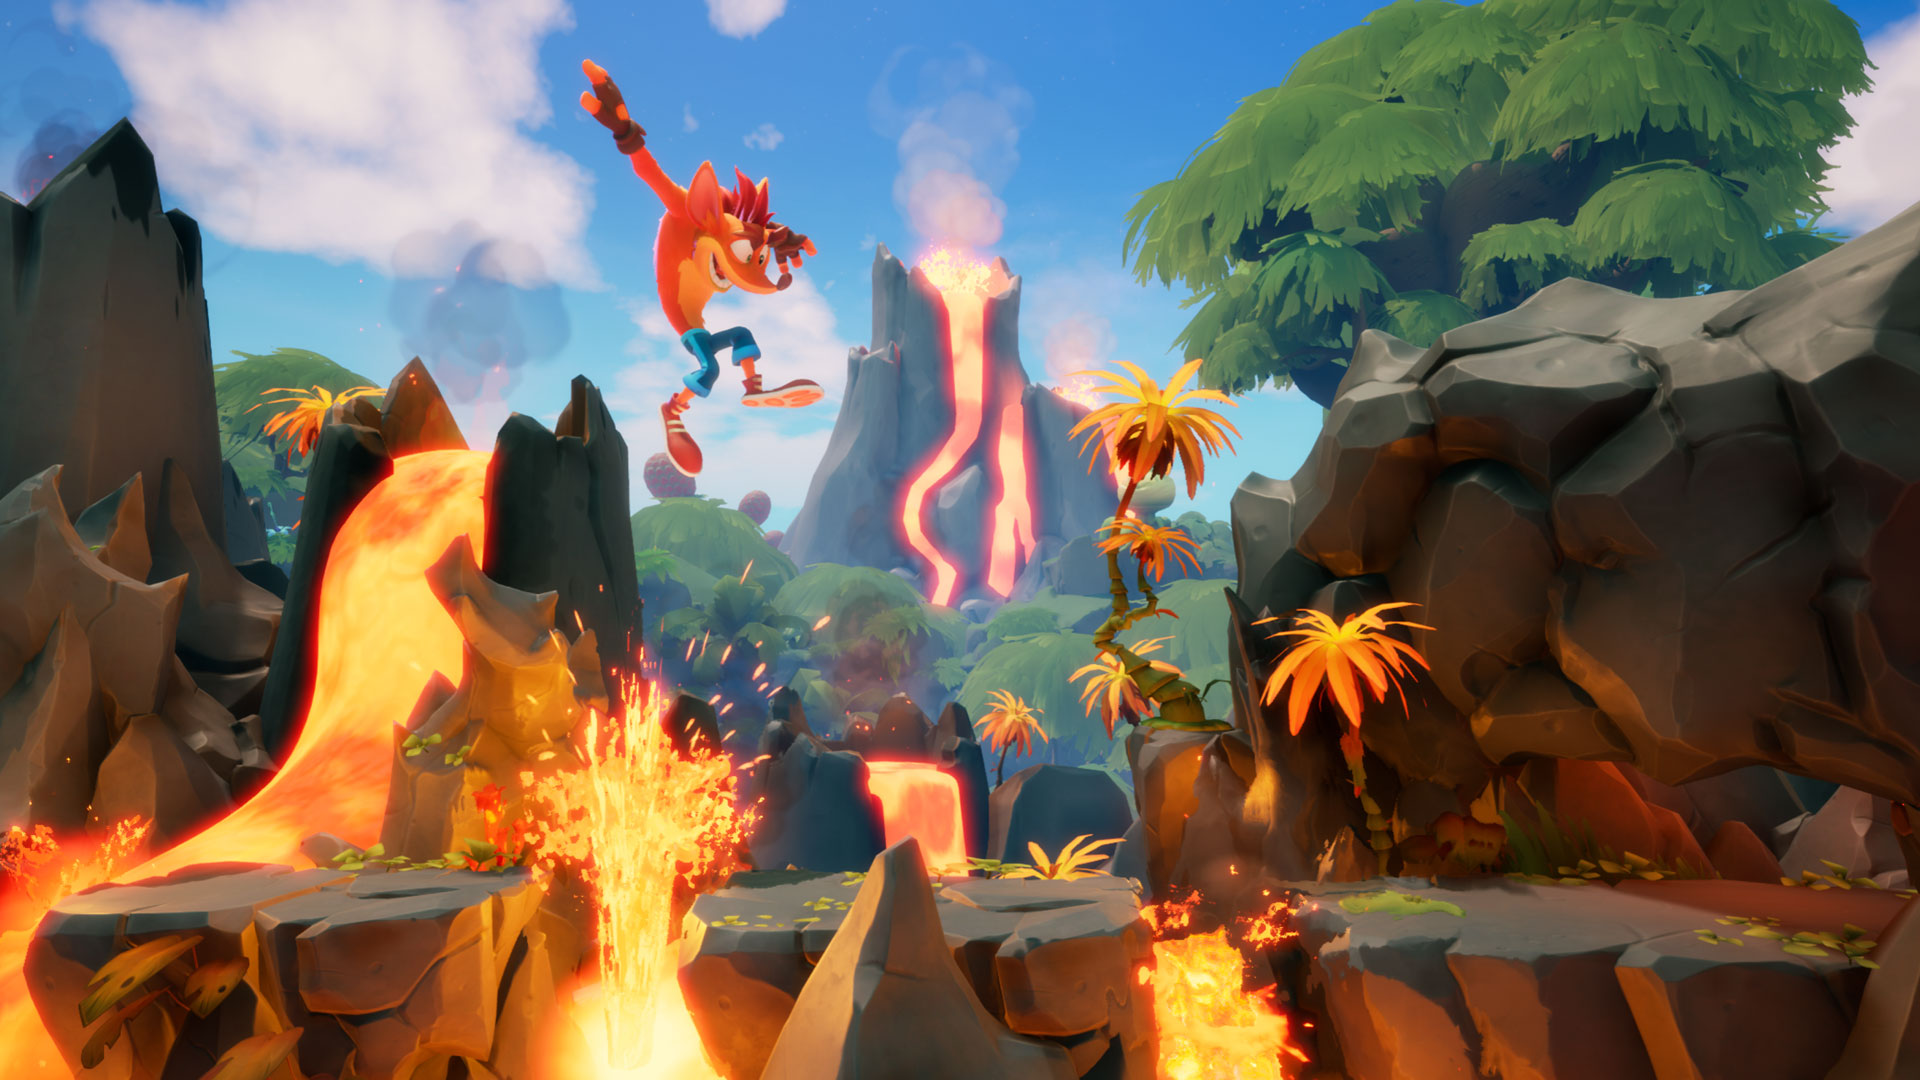 Just N.Time for Fall – Crash Bandicoot™ 4: It's About Time - Image 1